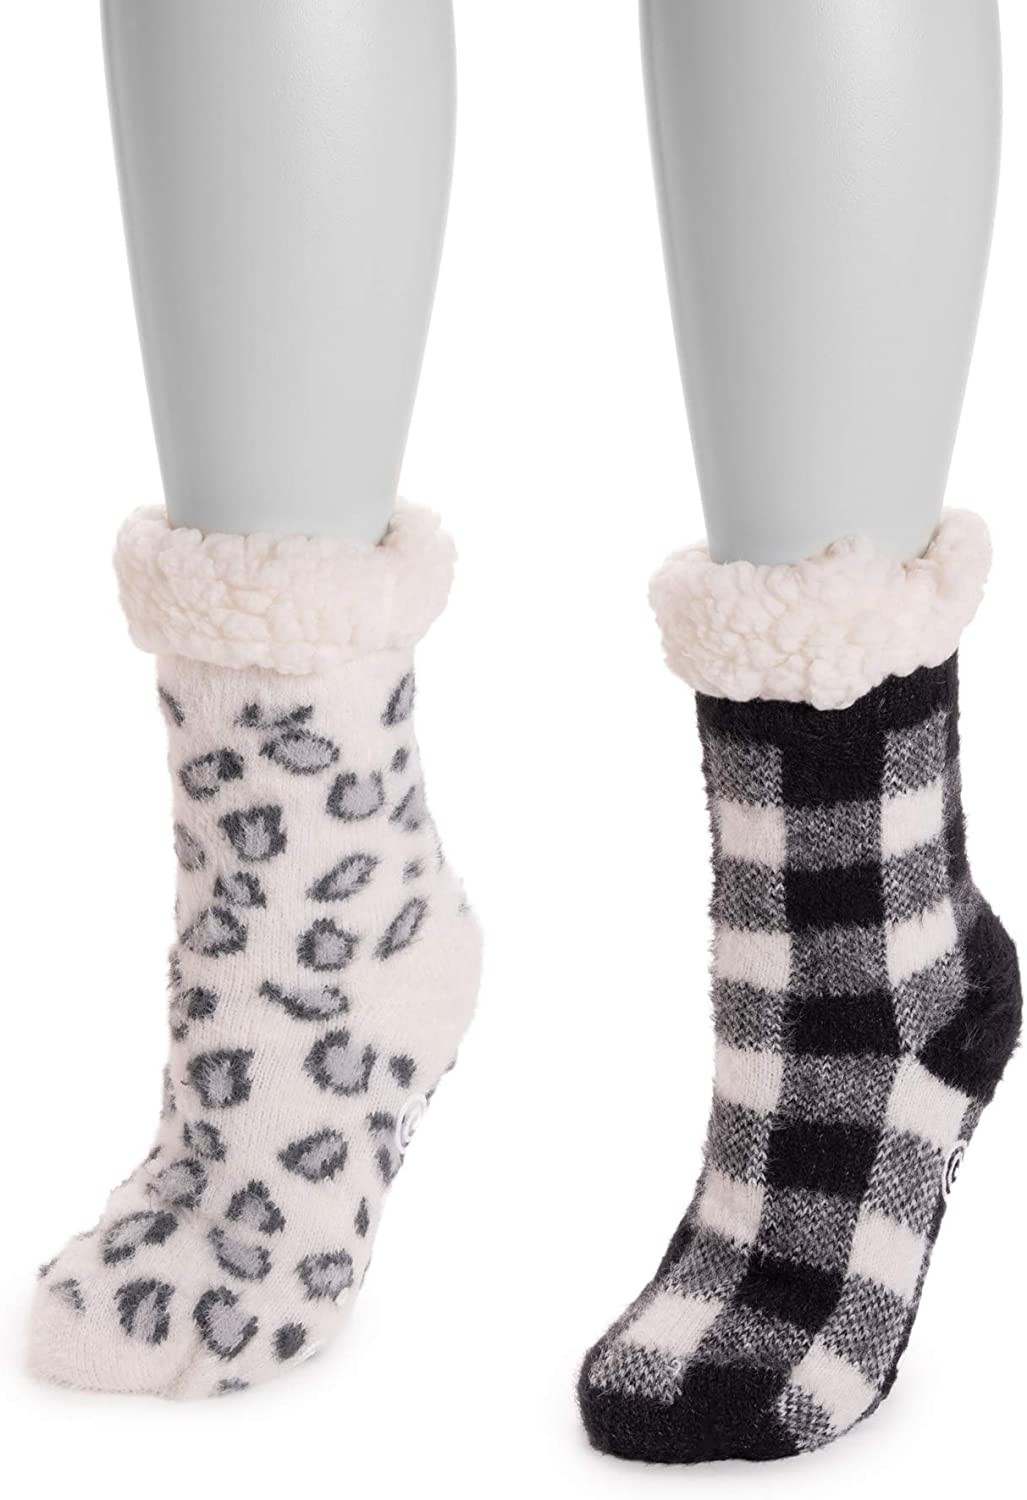 Sale special price Muk Luks Cabin Cozy Sock 2 Ivory S Black M and Pair Regular store